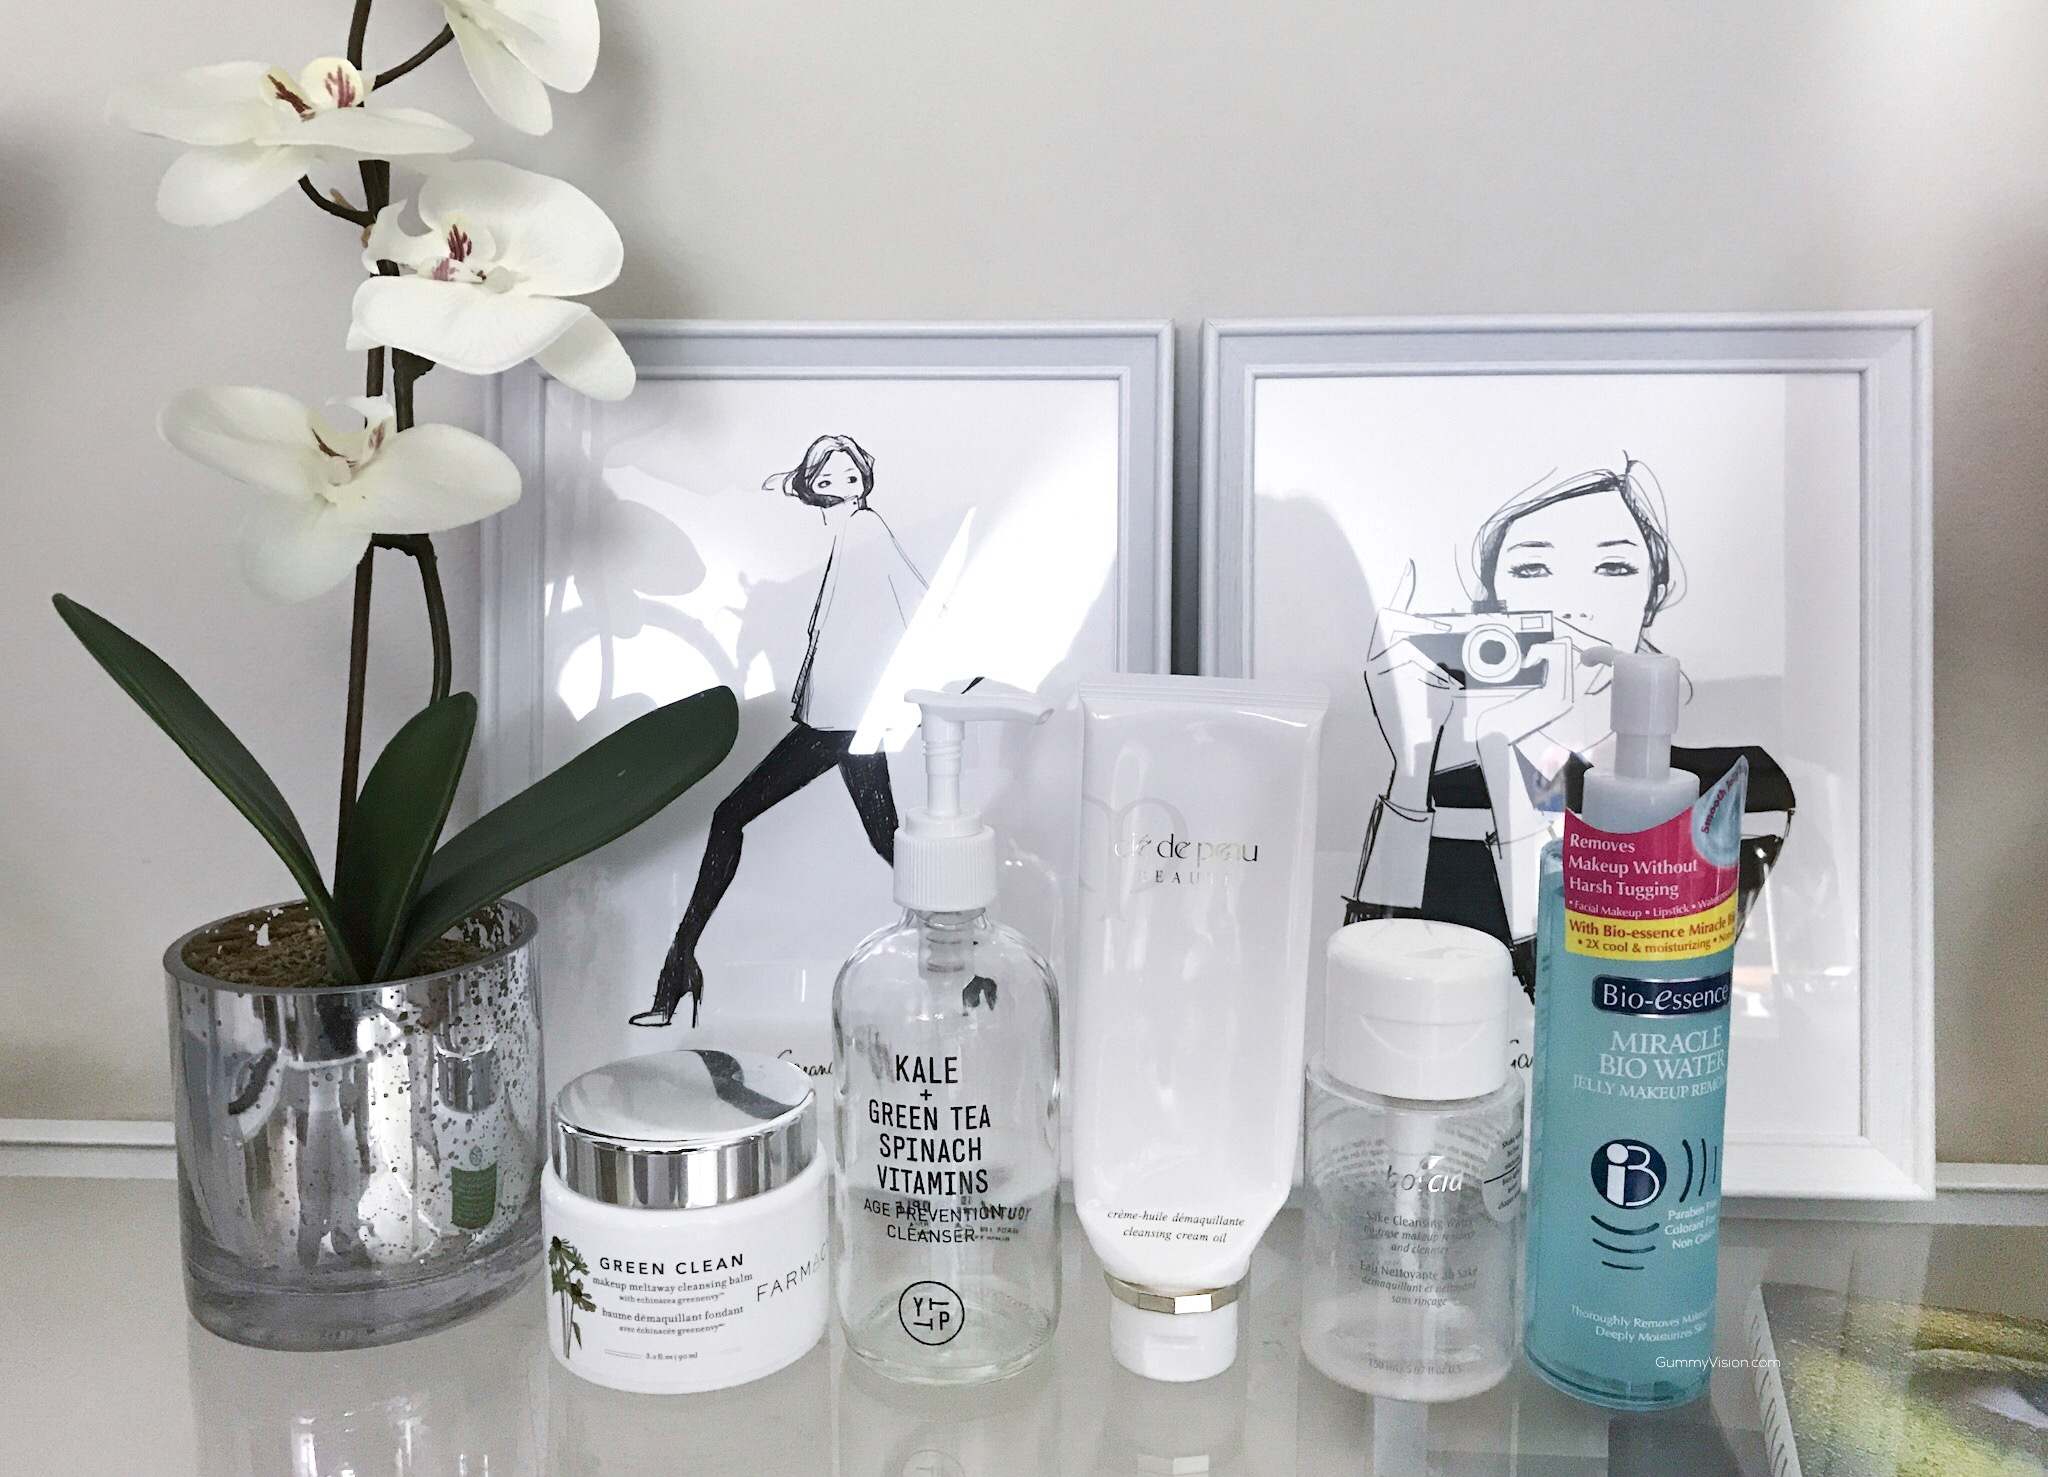 L to R: Farmacy Green Clean Makeup Meltaway Cleansing Balm, Youth to the People Age Prevention Cleanser, Cle de Peau Cleansing Cream Oil, Boscia Sake Cleansing Water, Bio-Essence Miracle Bio Water Cleansing Jelly Makeup Remover